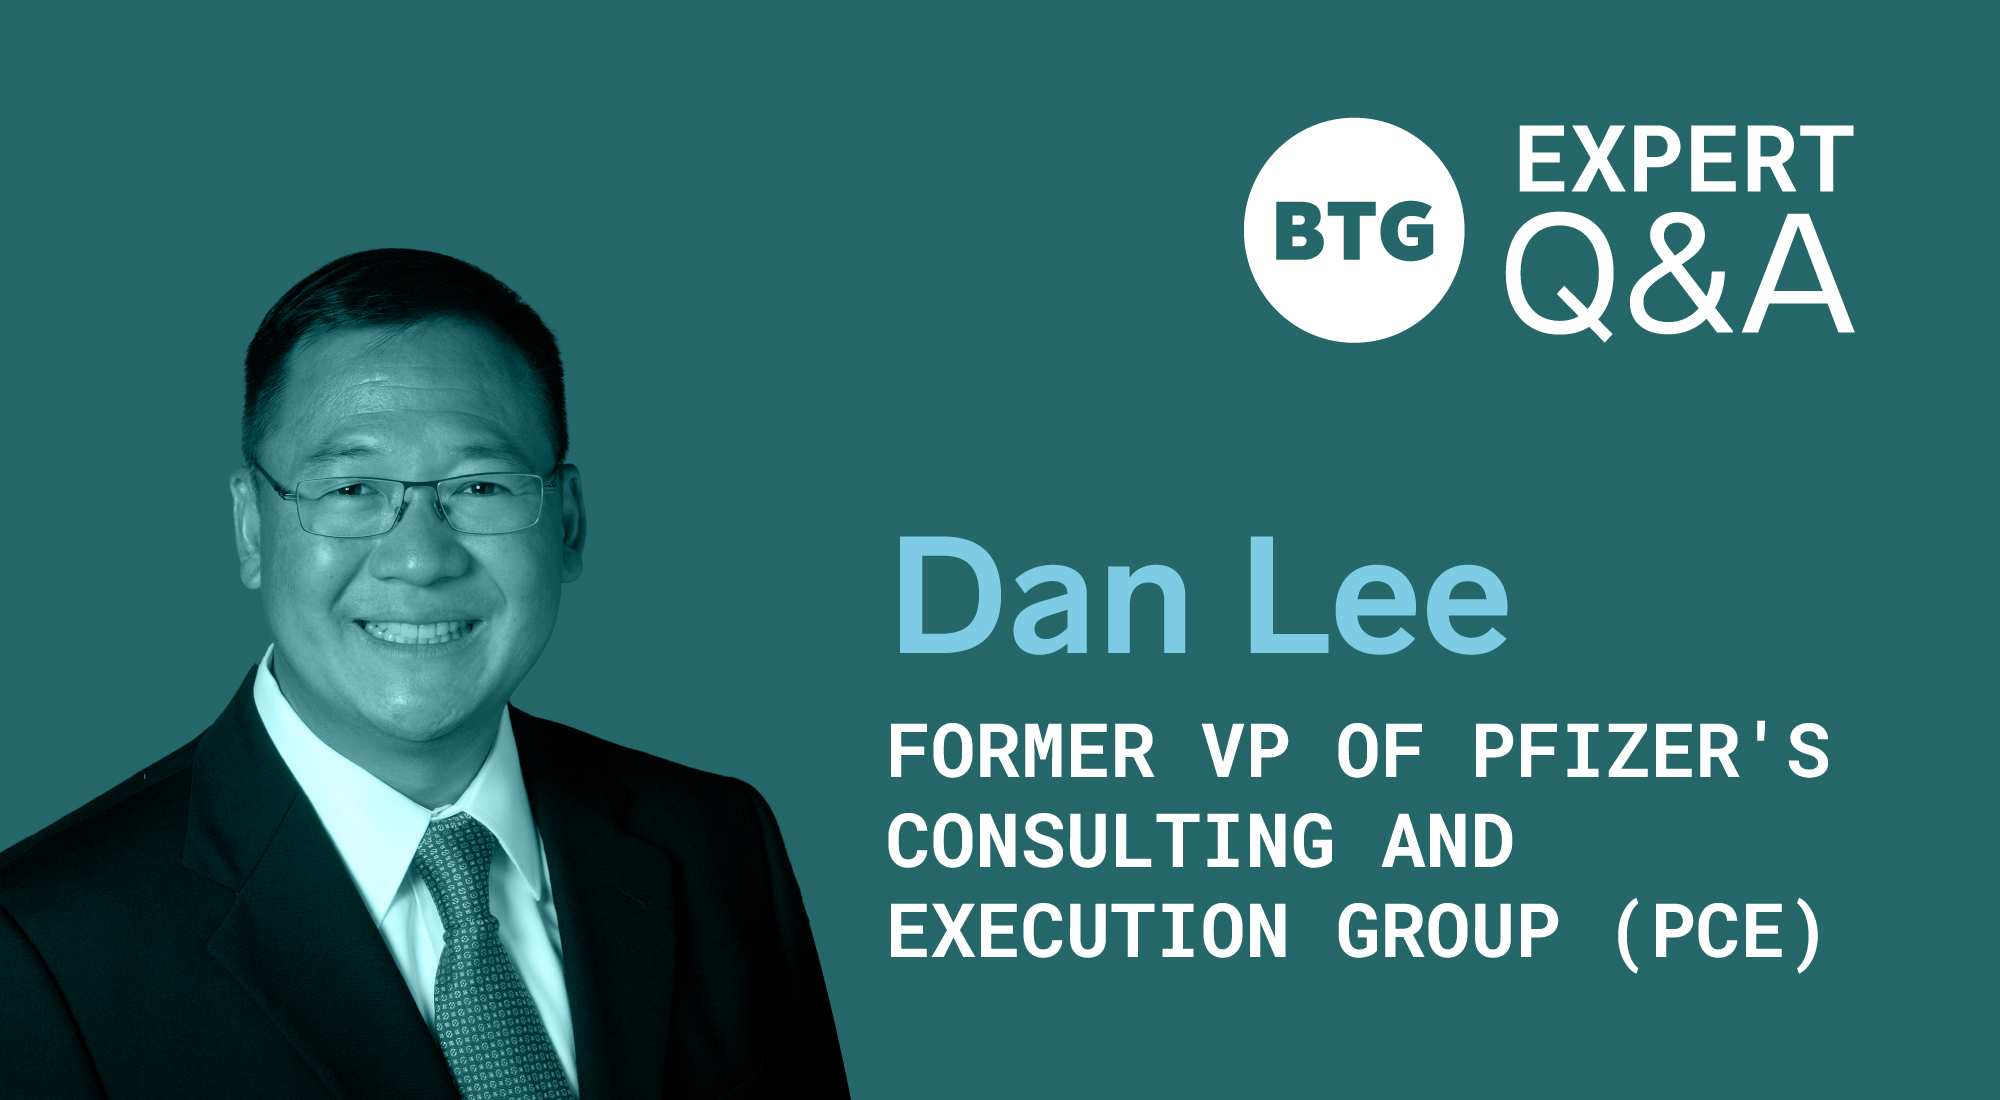 internal consulting group - dan lee